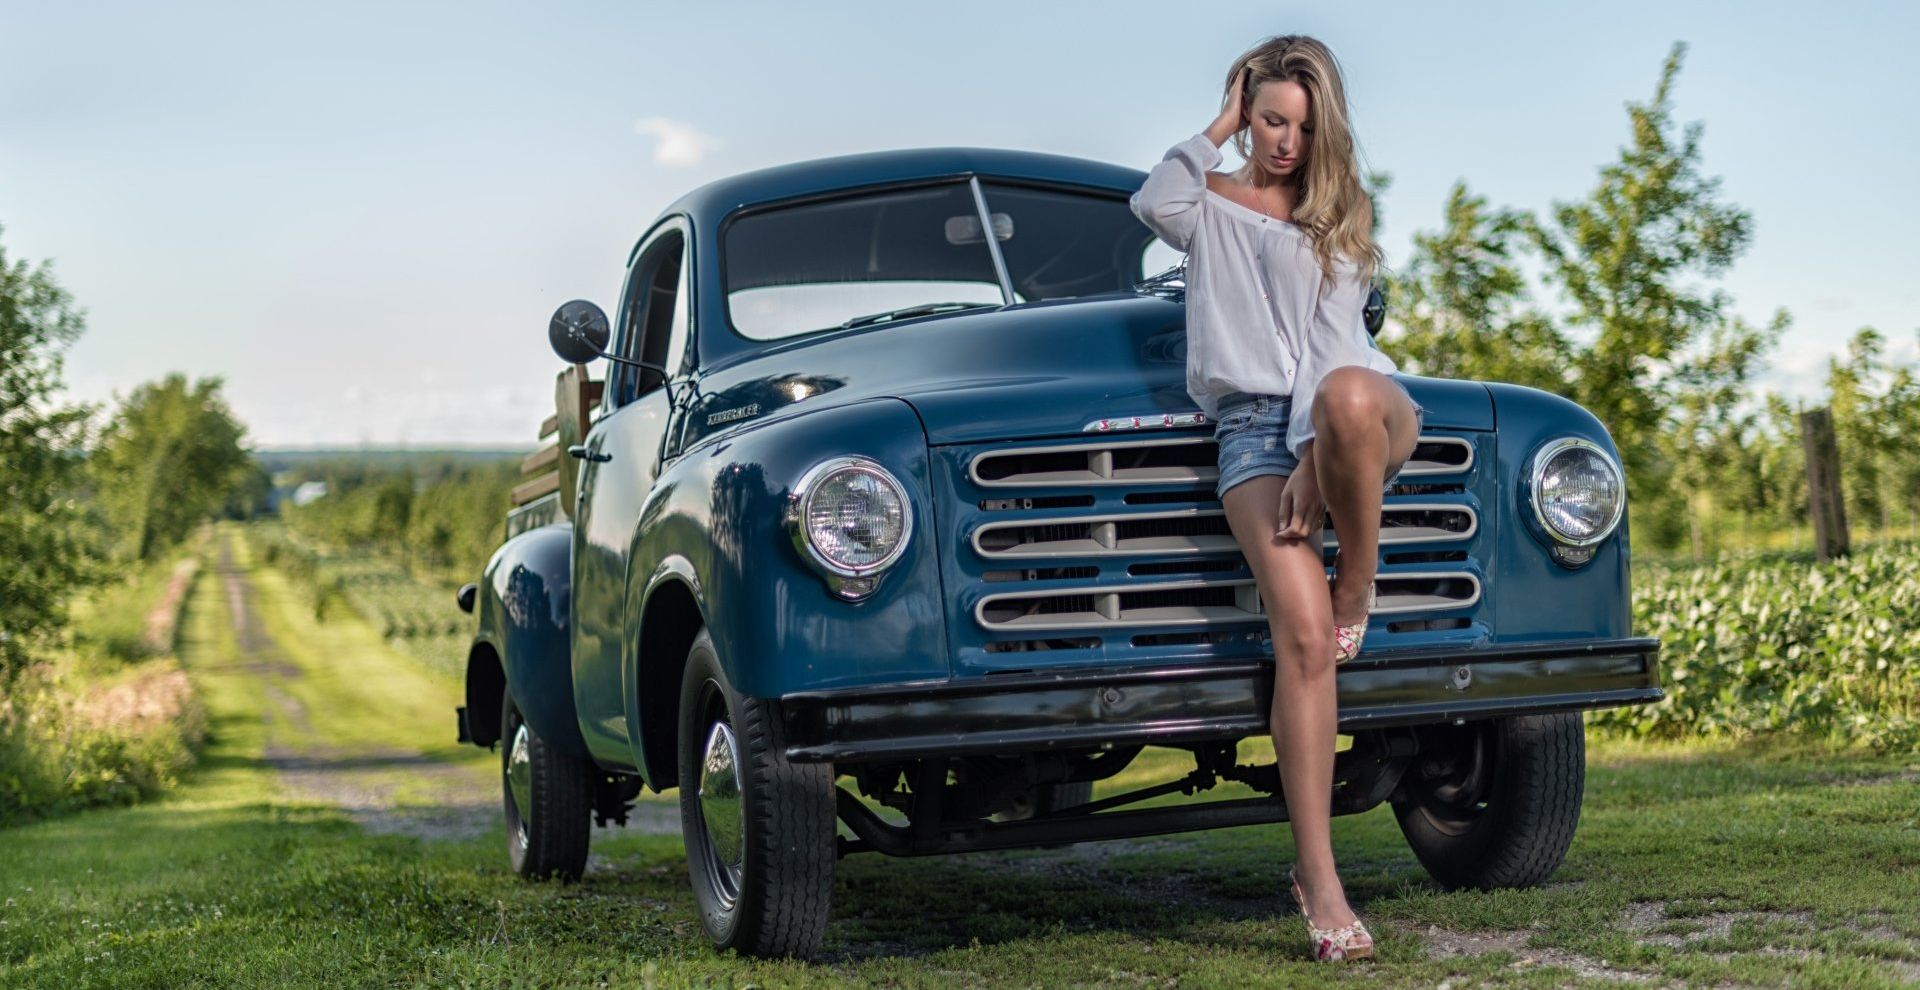 20 Old Pickups Collectors Need To Buy Before They Cost 1 Million 1955 Ford F100 Value